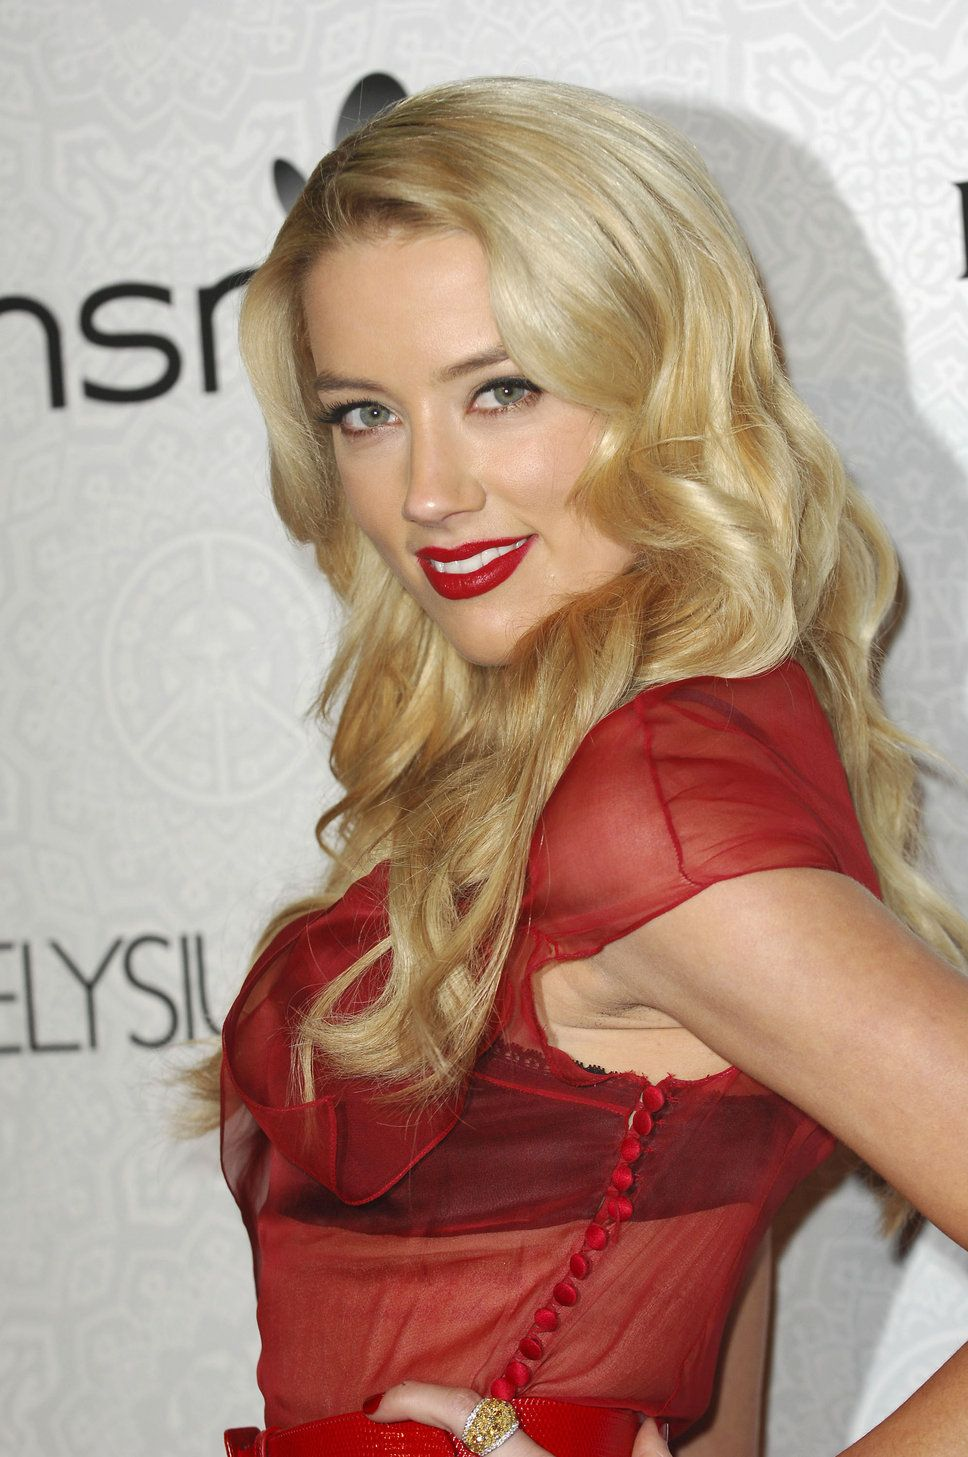 Wavy Blonde Hair With Bright Red Lipstick Blonde Wavy Hair